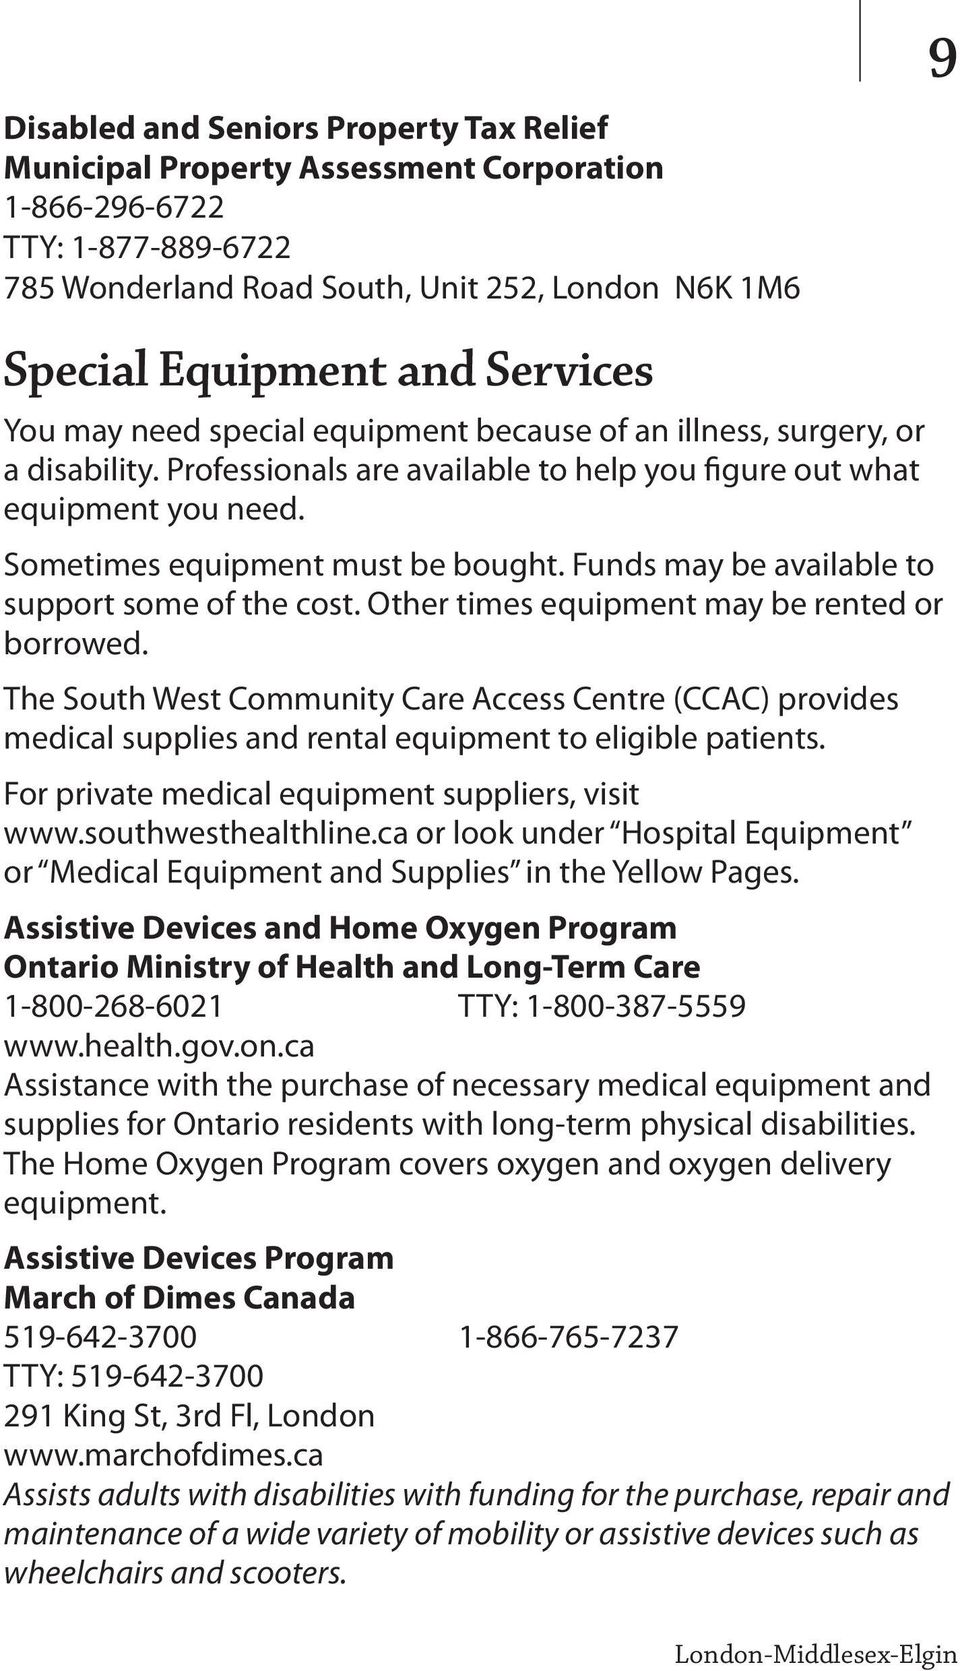 Funds may be available to support some of the cost. Other times equipment may be rented or borrowed.